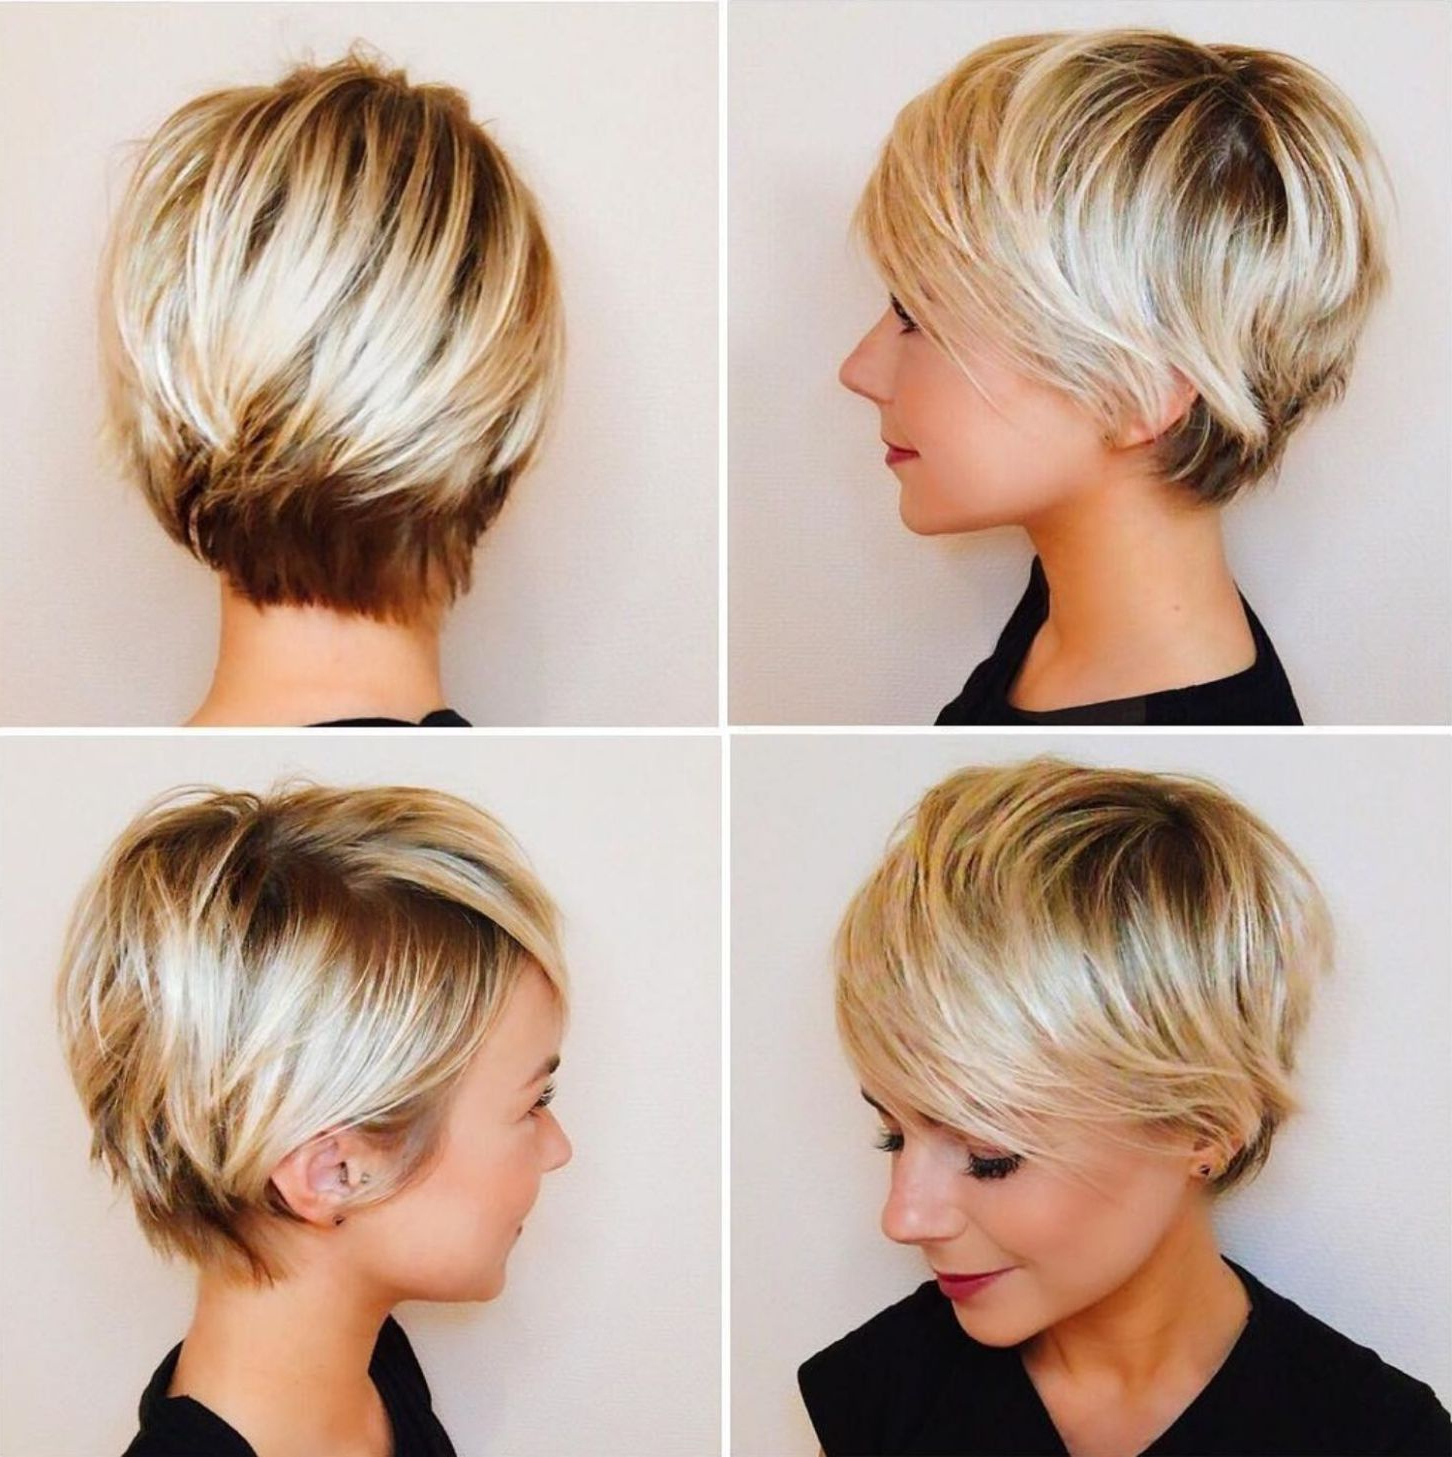 21 Contemporary Hairstyles For An Amazing Appearance Within Minimalist Pixie Bob Haircuts (View 16 of 20)